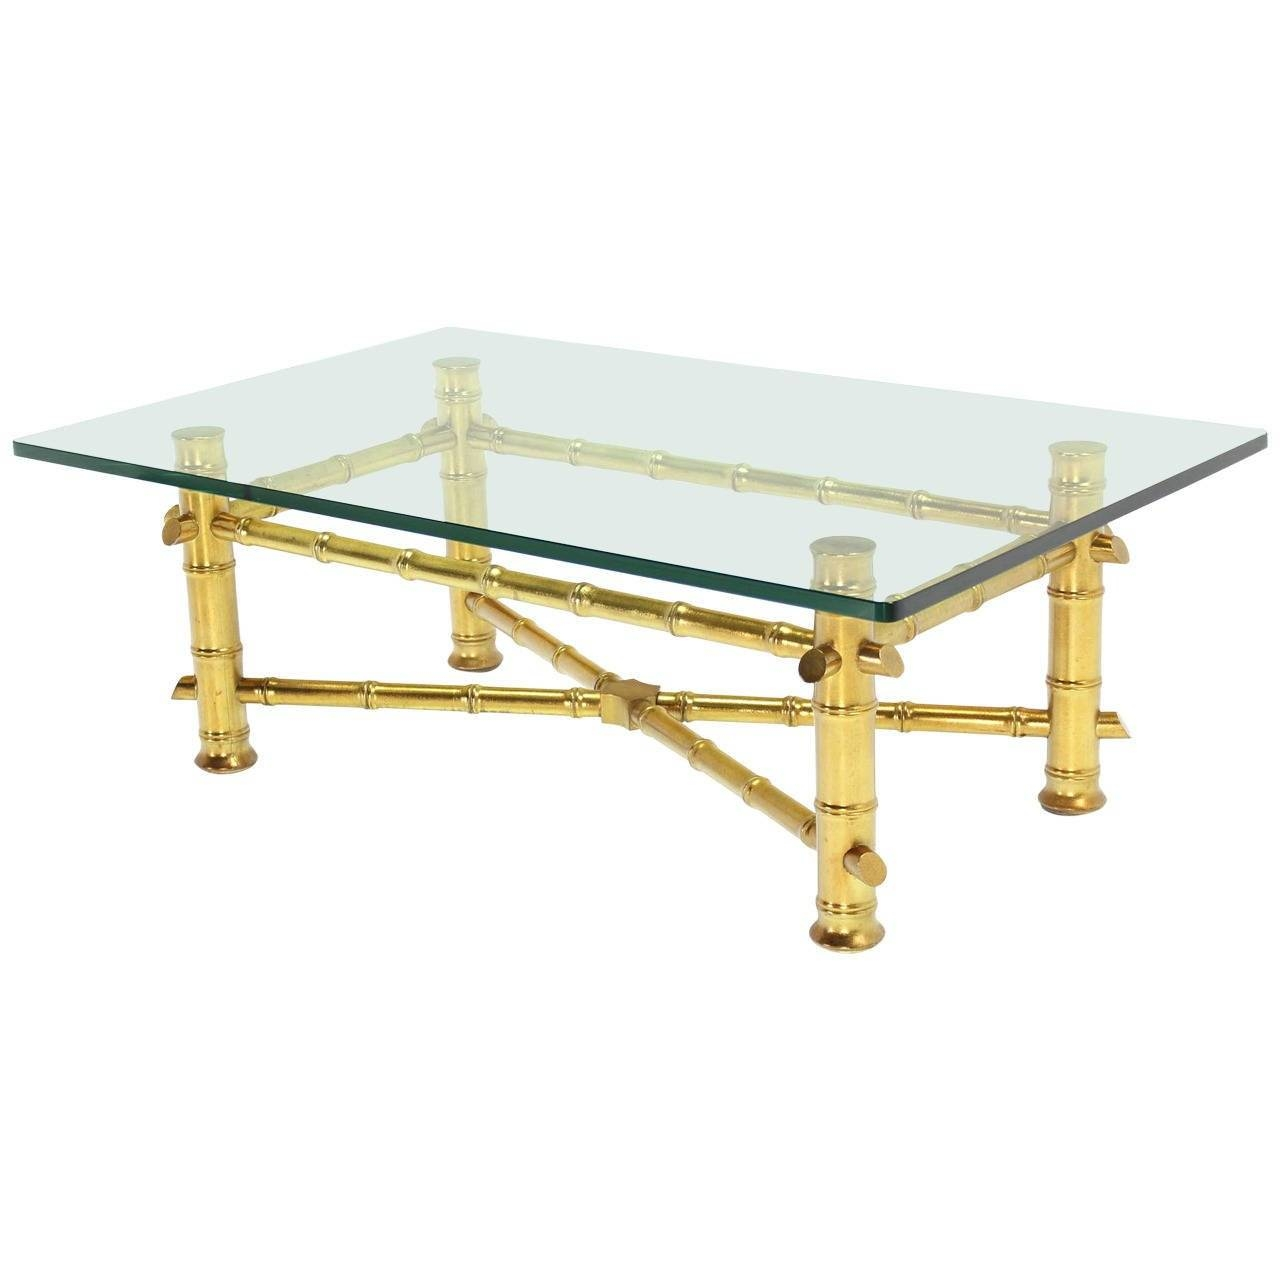 Gold Leaf Faux Bamboo Base Coffee Table With Thick Glass Top For within Gold Bamboo Coffee Tables (Image 28 of 30)